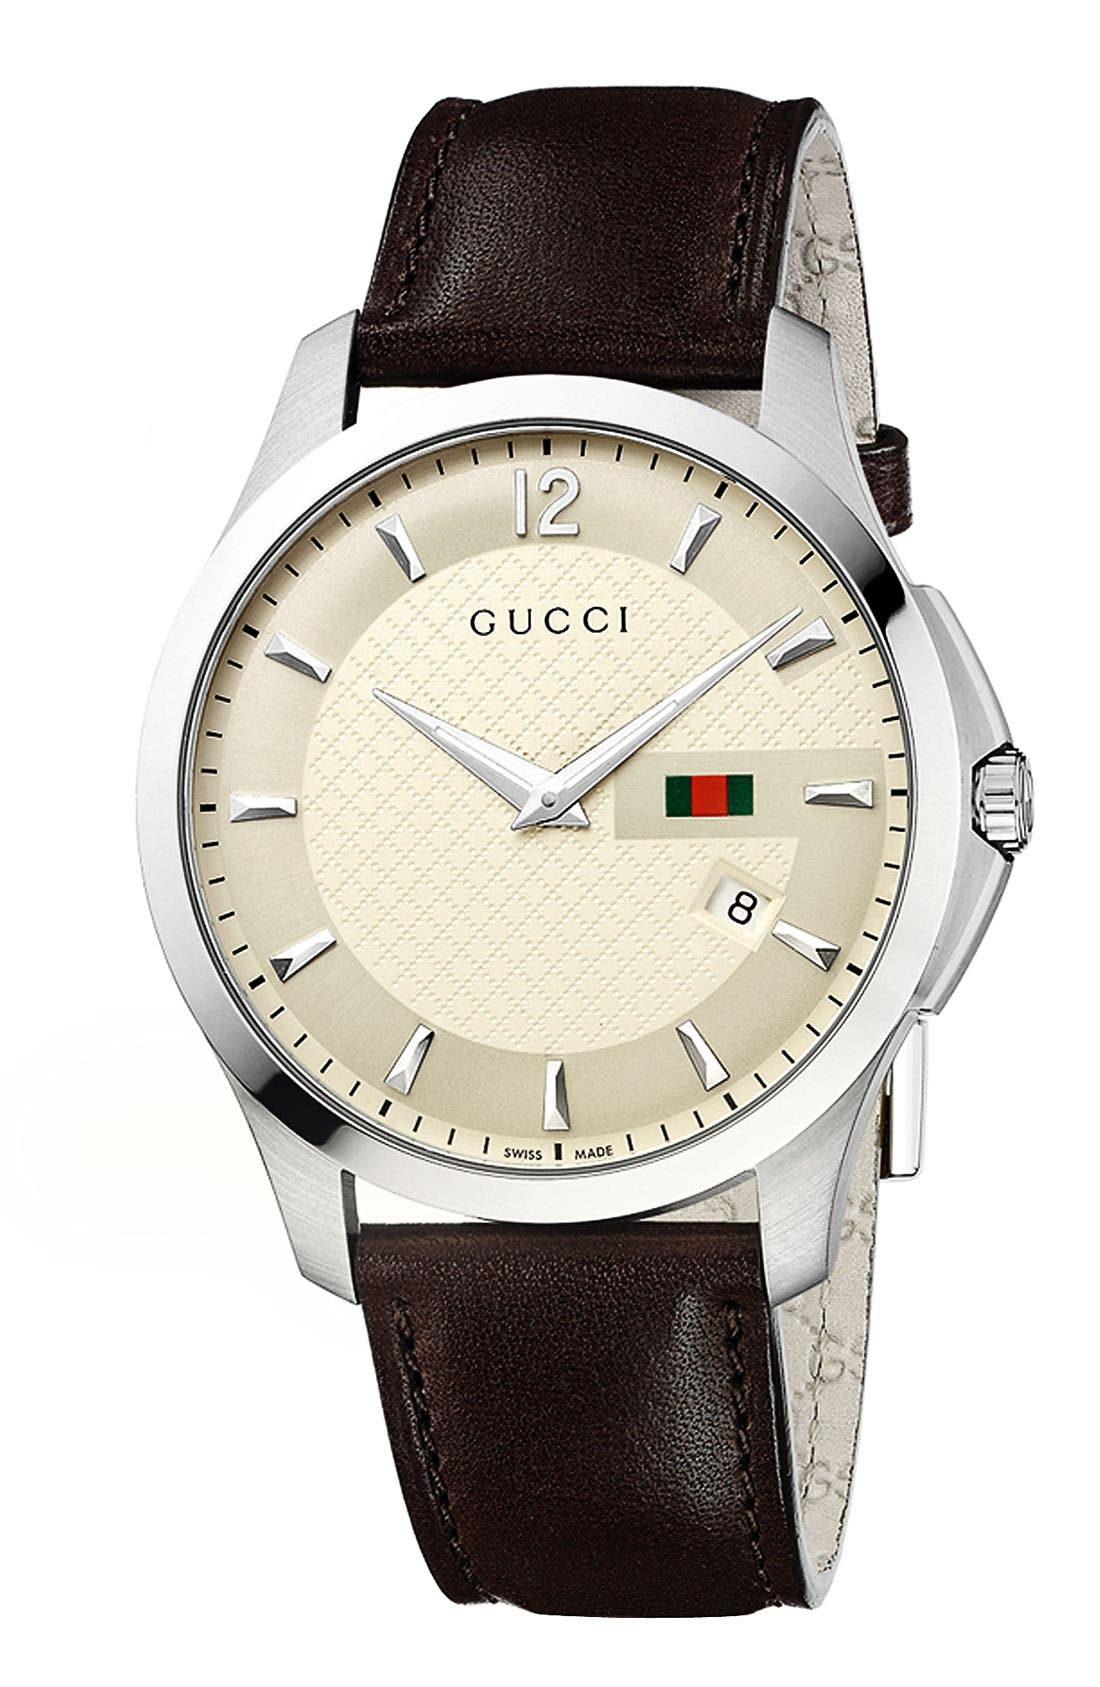 Main Image - Gucci 'G Timeless' Leather Strap Watch, 40mm